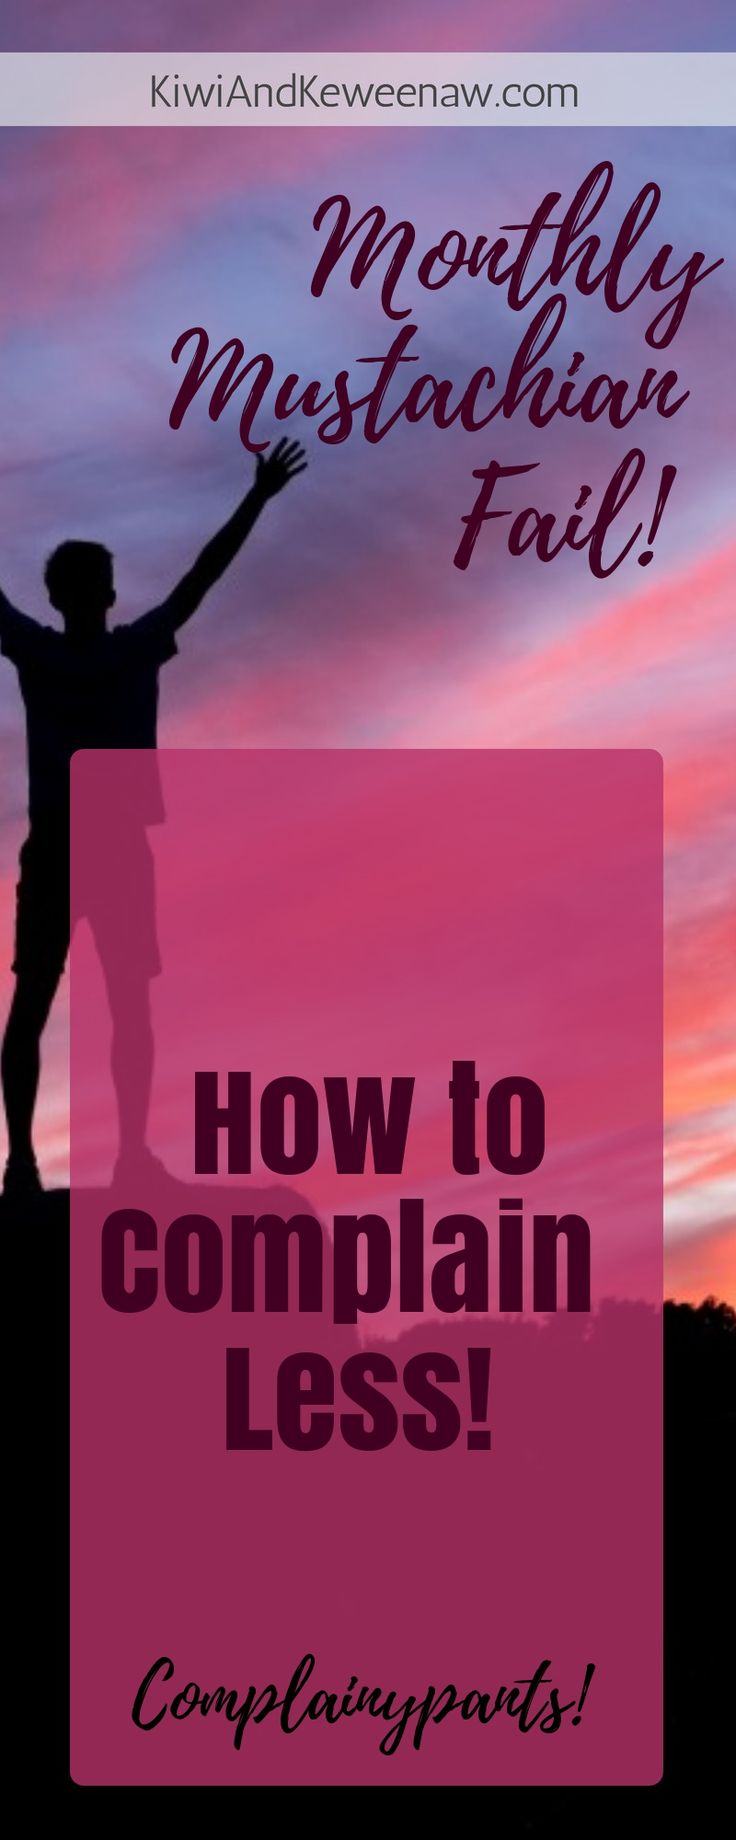 Stop being a complainypants! How to complain less, manage your expectations, and set yourself up for financial success! So many great resources within this post! Monthly mustachian fails! Mr. Money Mustache lifestyle compared to a real life person! KiwiAndKeweenaw.com